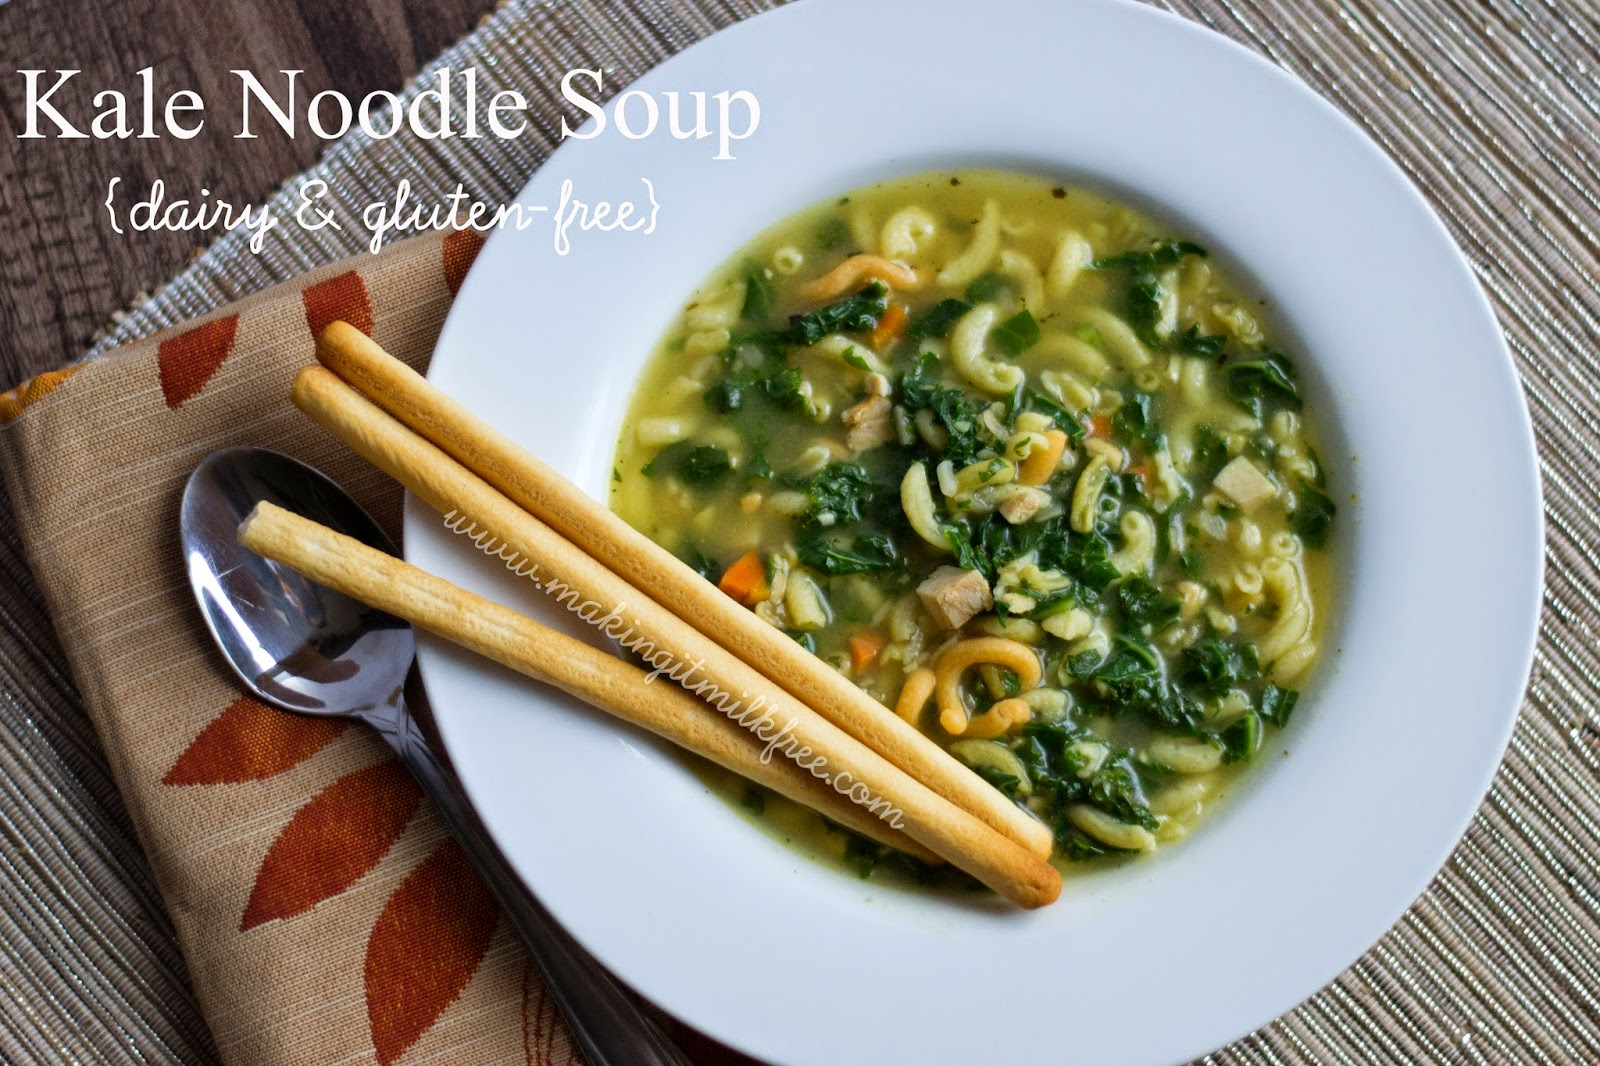 #glutenfree #dairyfree #soup #fallrecipes